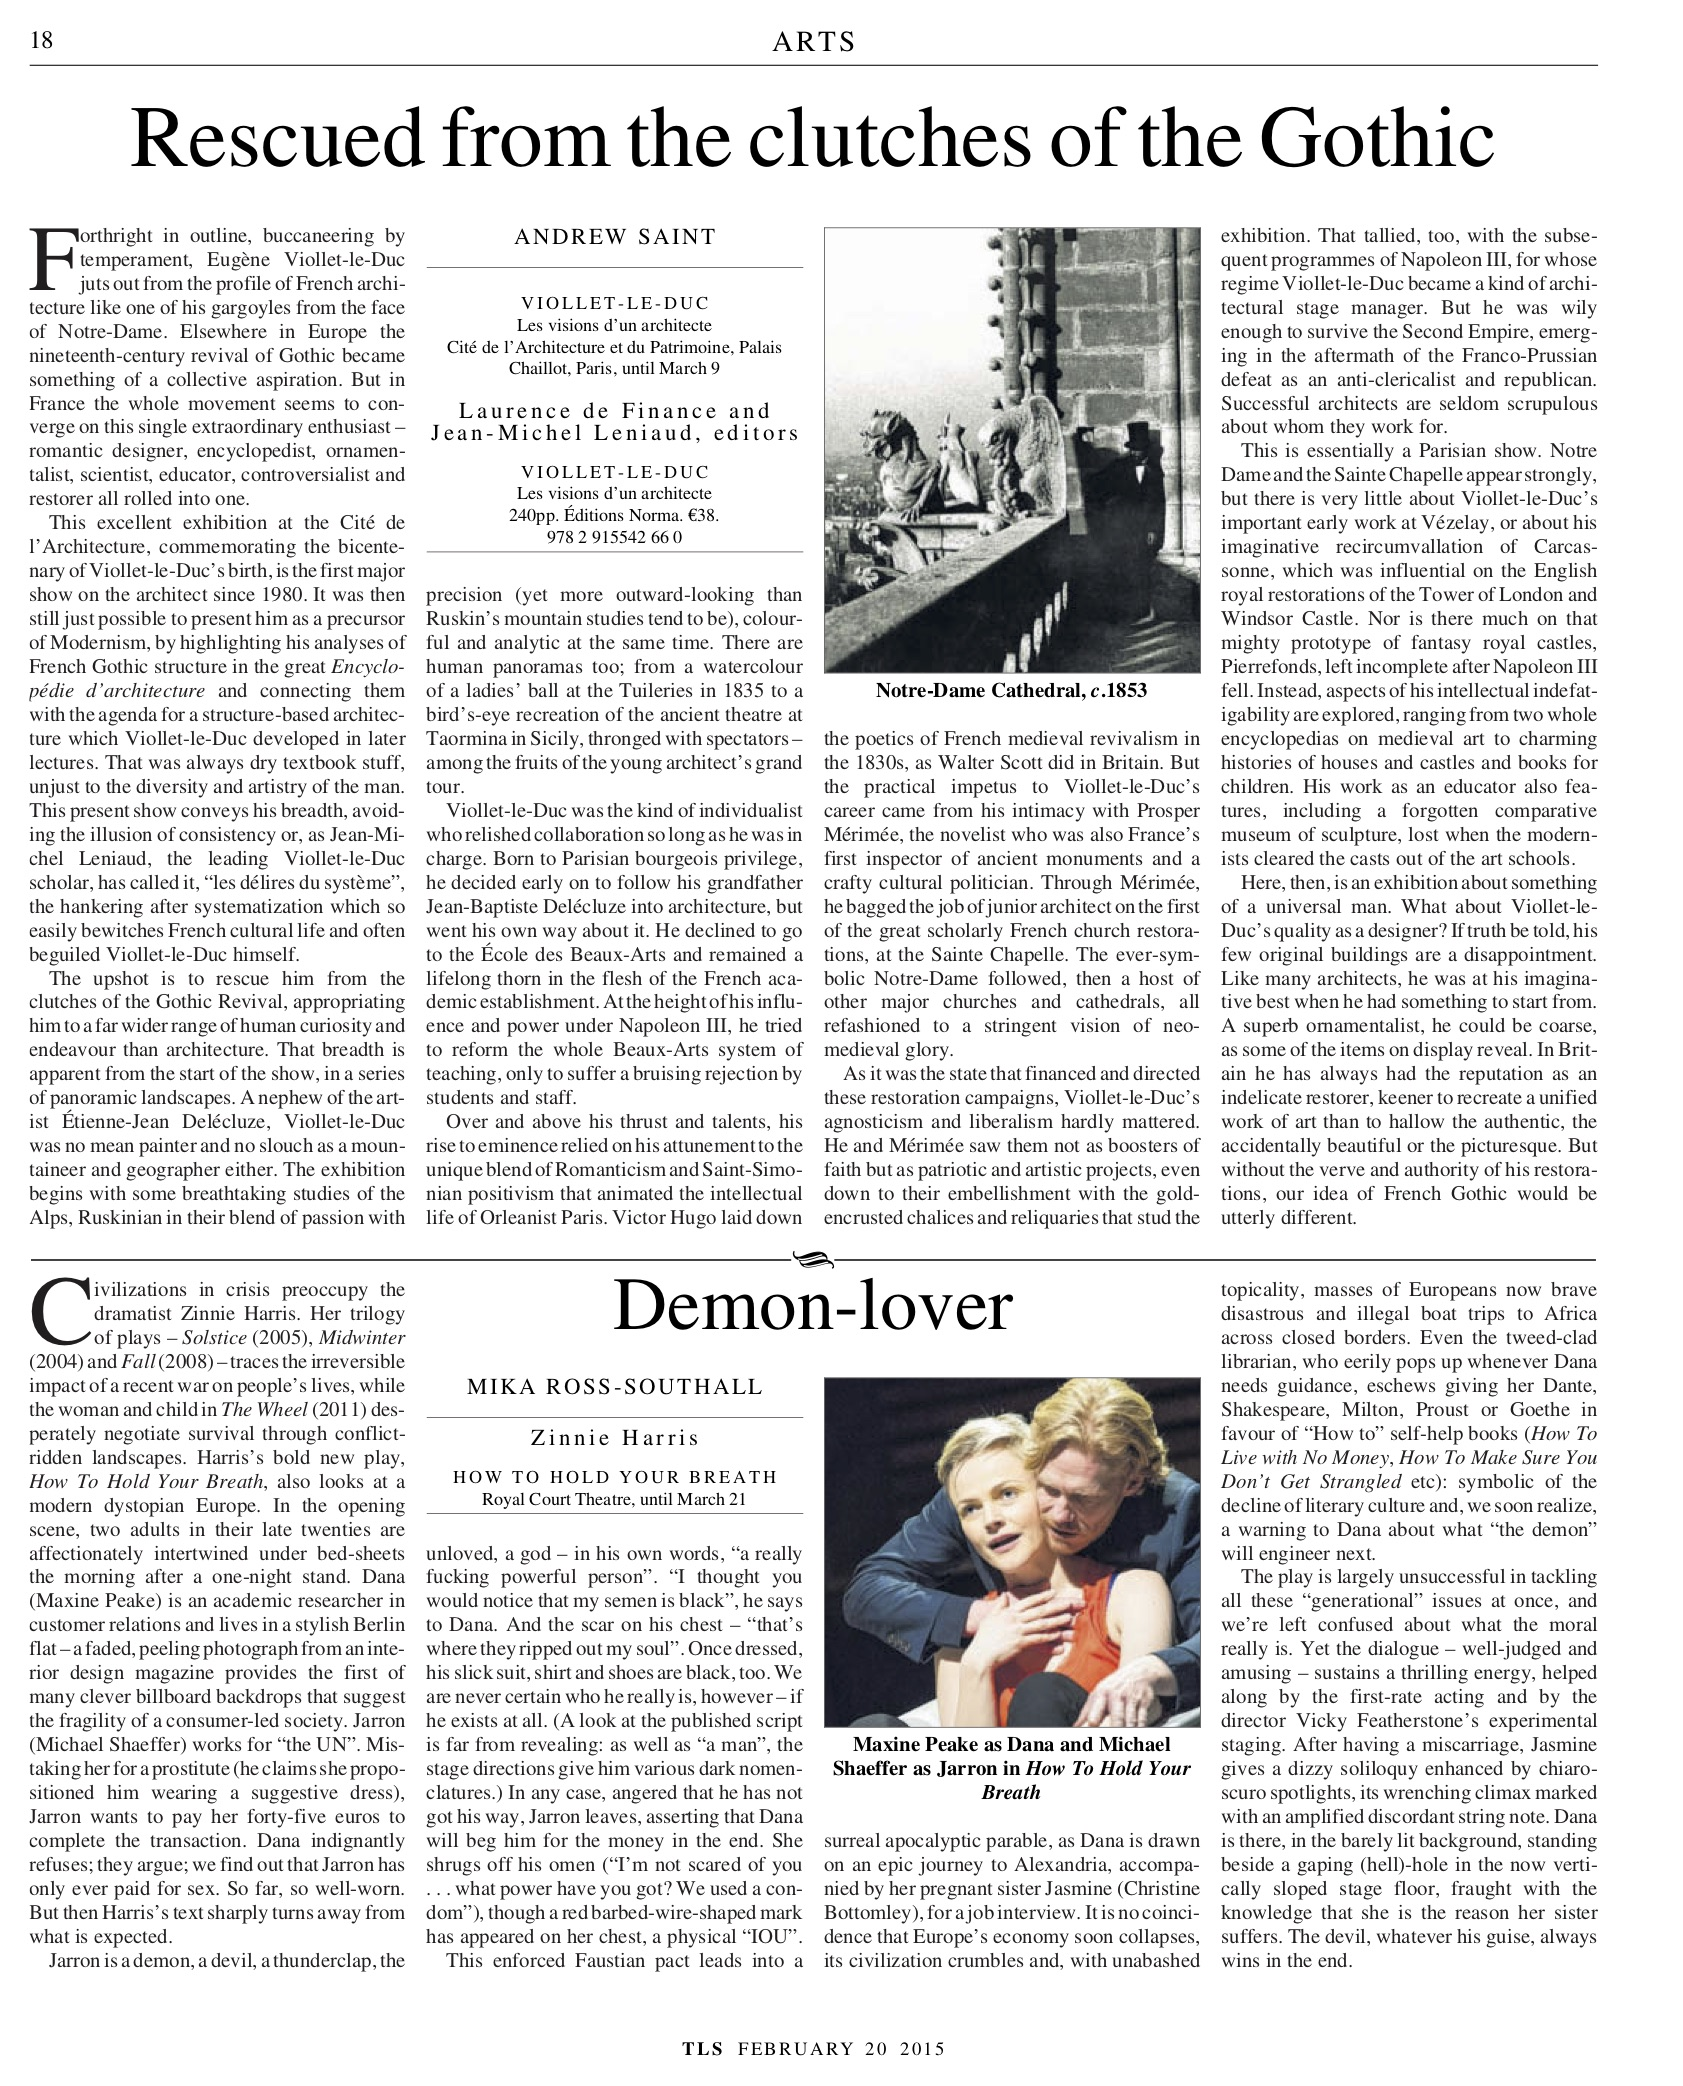 Demon-lover, Zinnie Harris, Published in The Times Literary Supplement, February 20, 2015